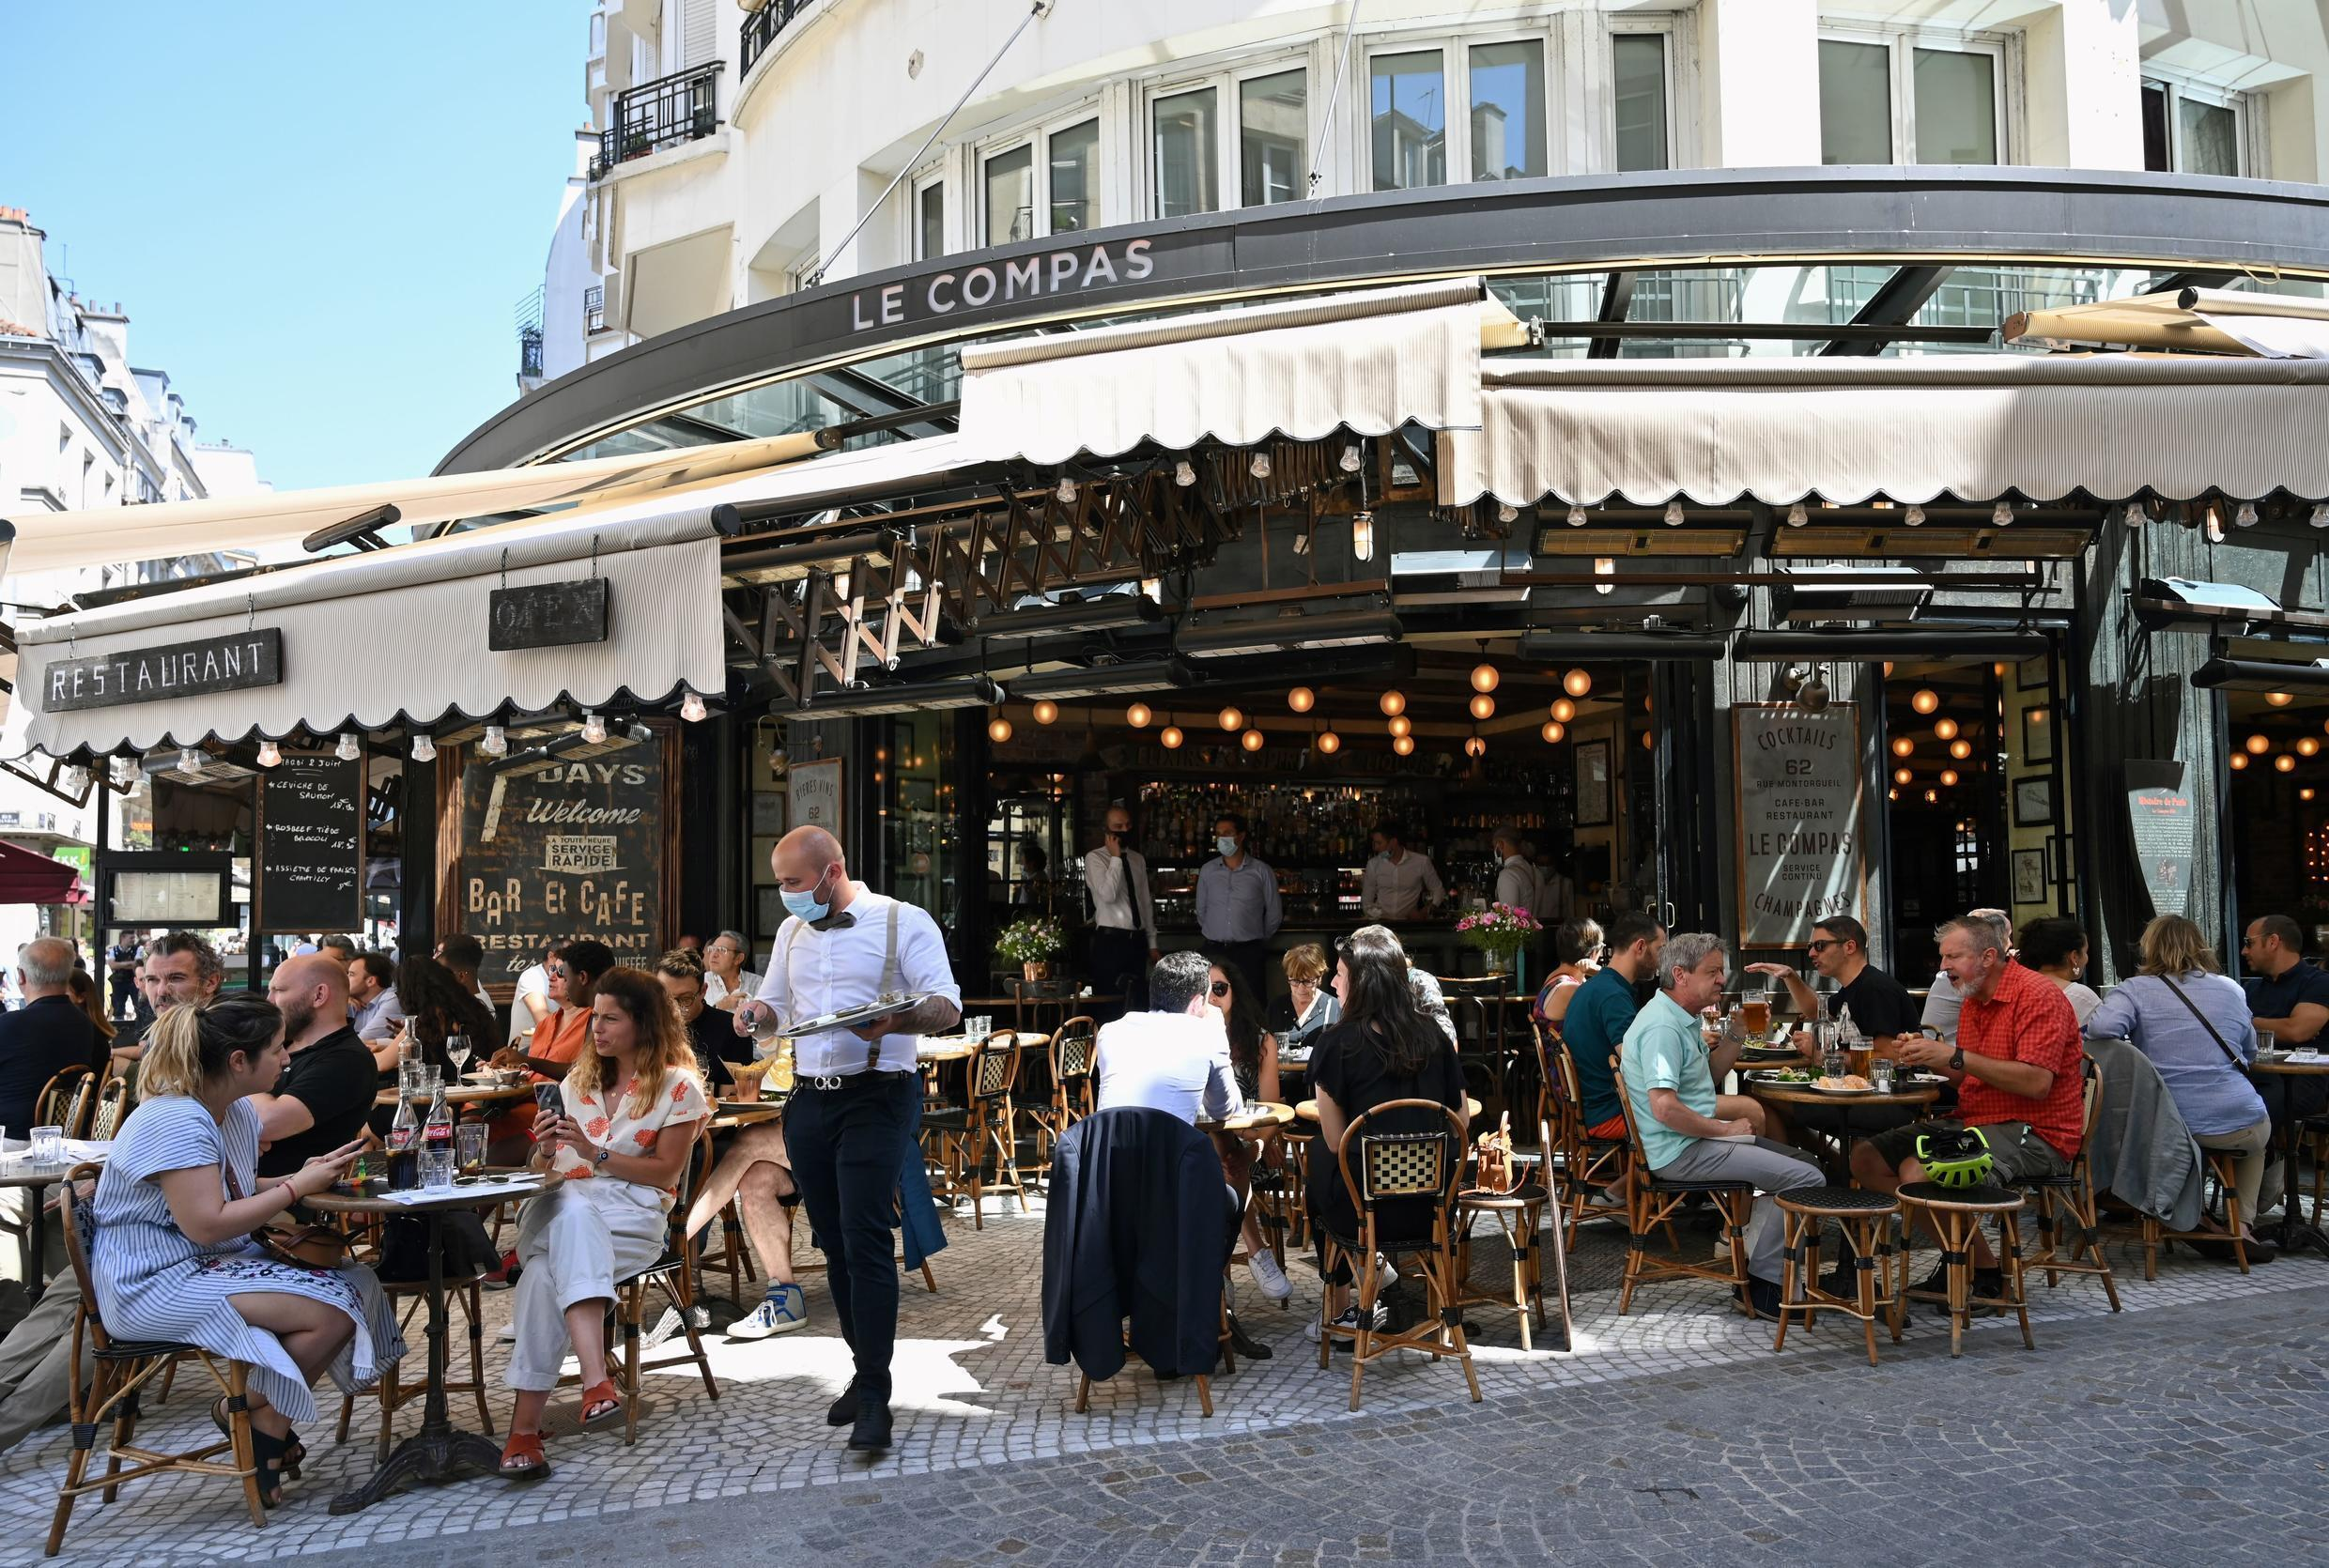 Poeple eat and drink at the terrace of the restaurant Le Compat in Paris on June 2, 2020.